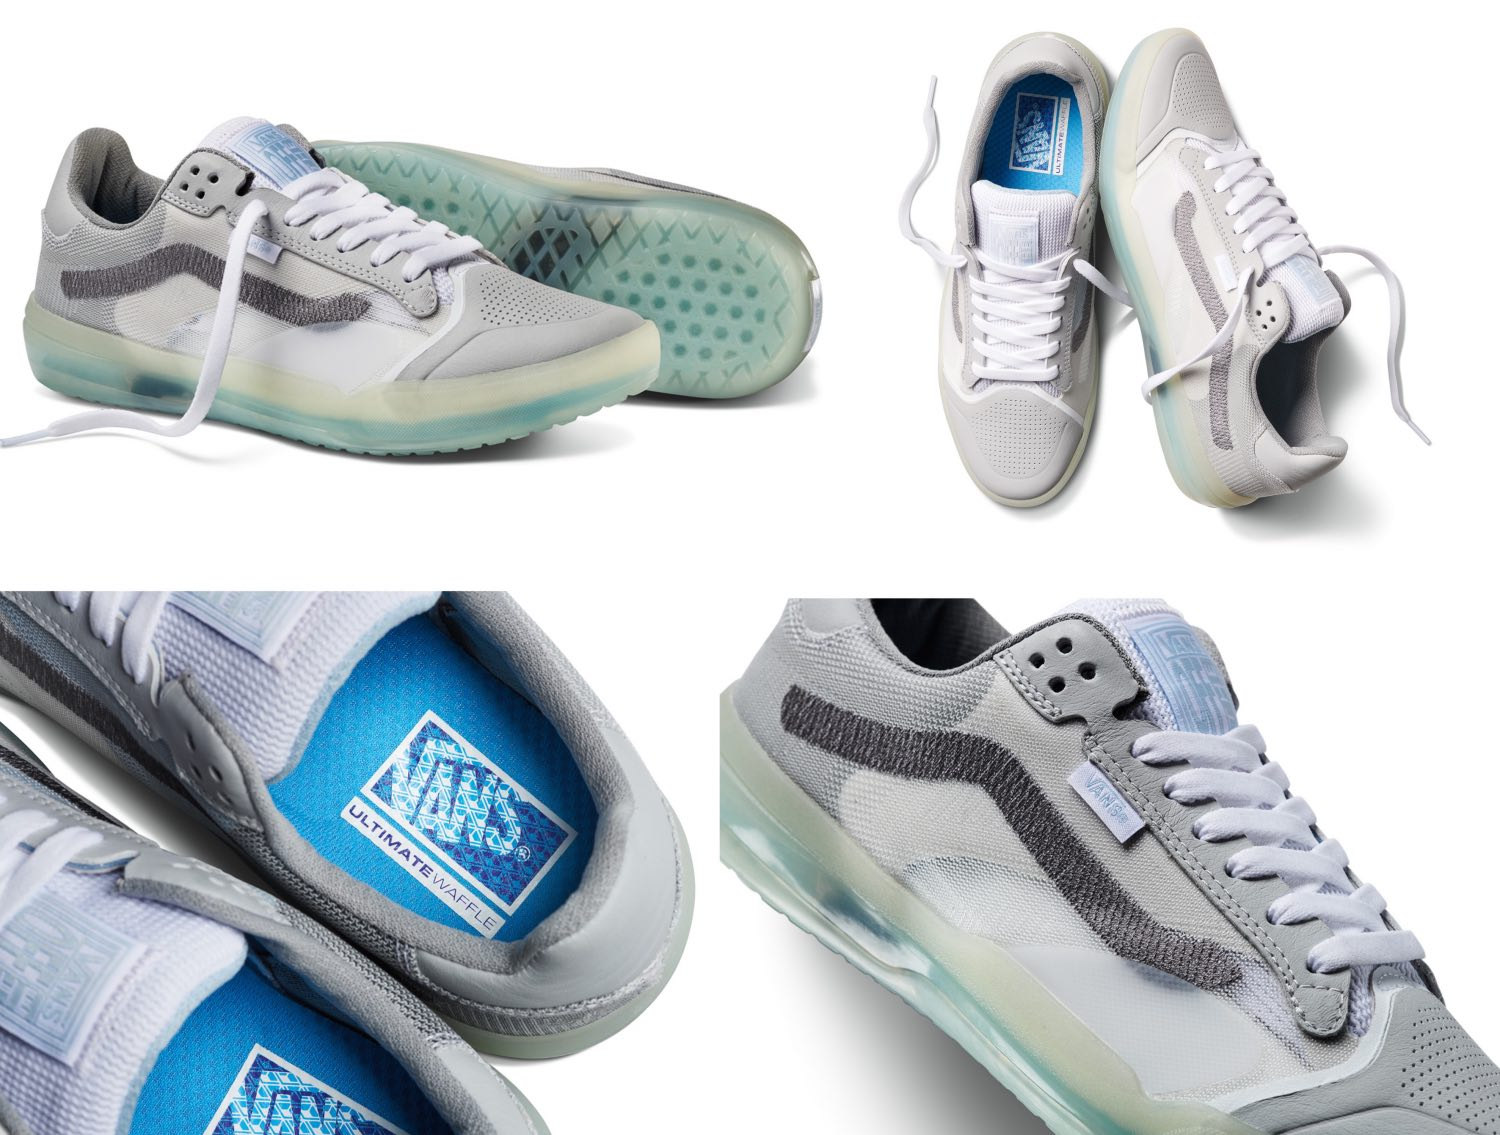 The Vans EVDNT UltimateWaffle comes in a robust color scheme in shades of blue